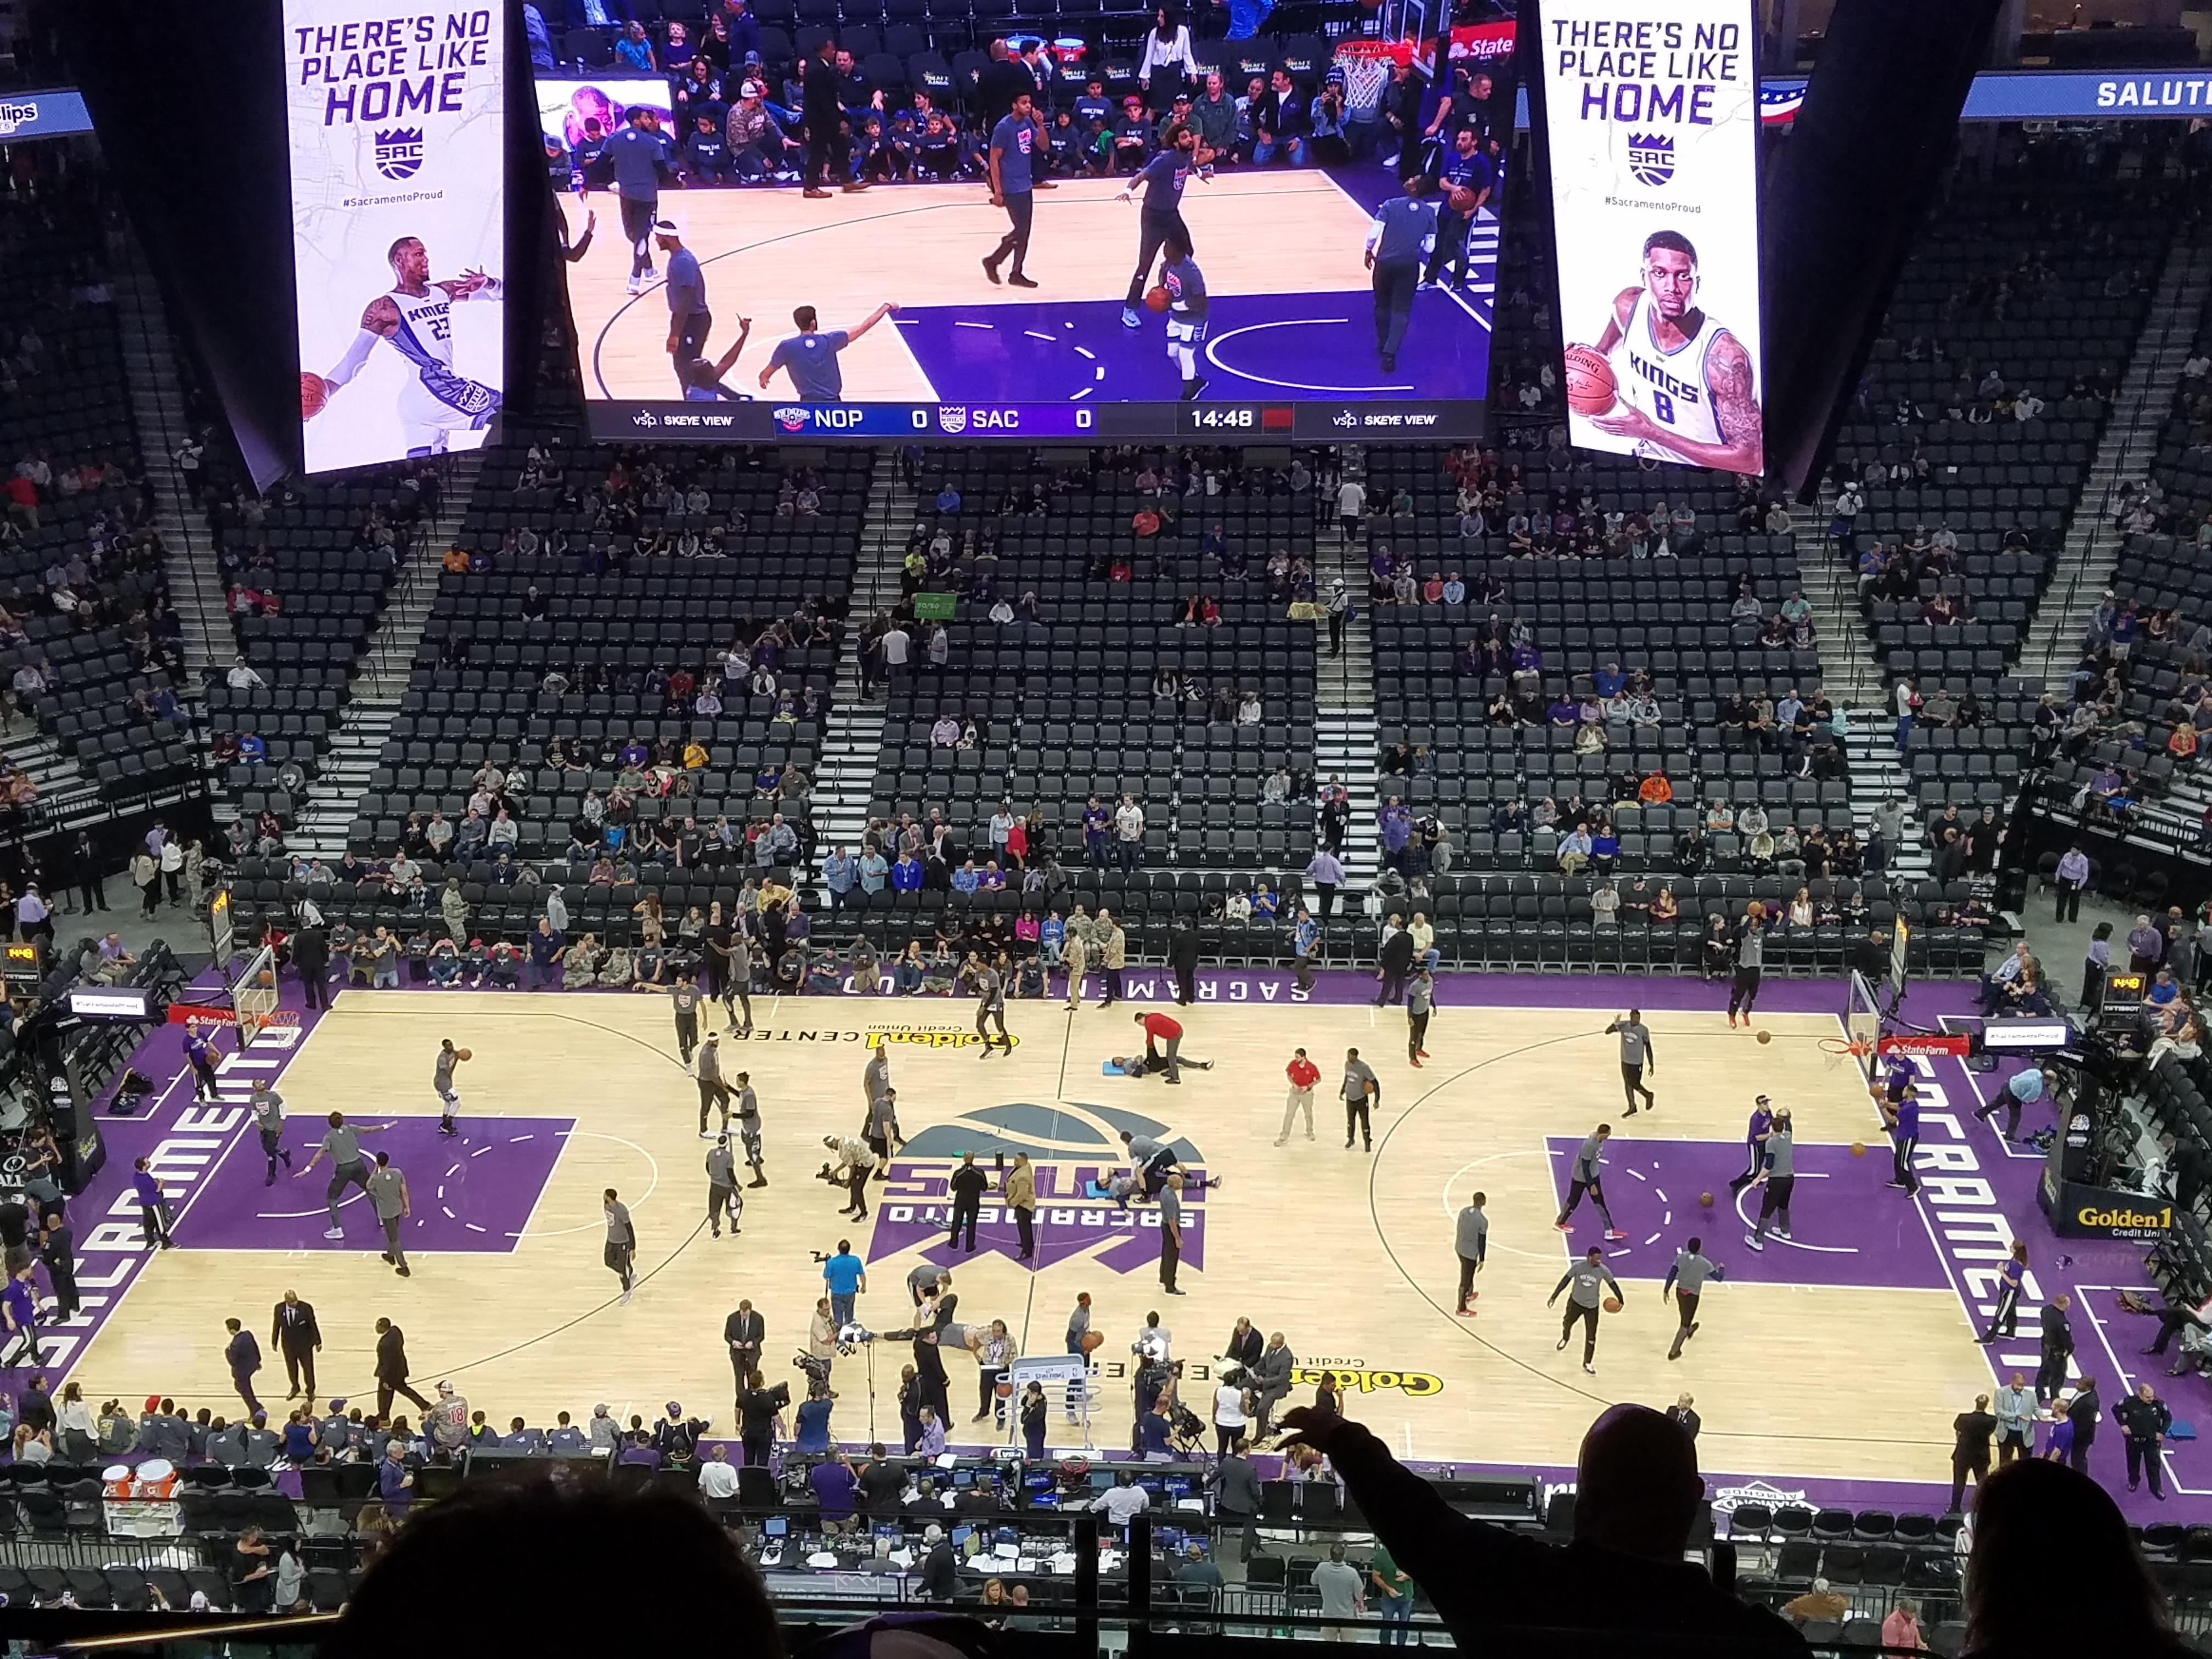 Golden 1 Center Secção 205 Fila G Lugar 4